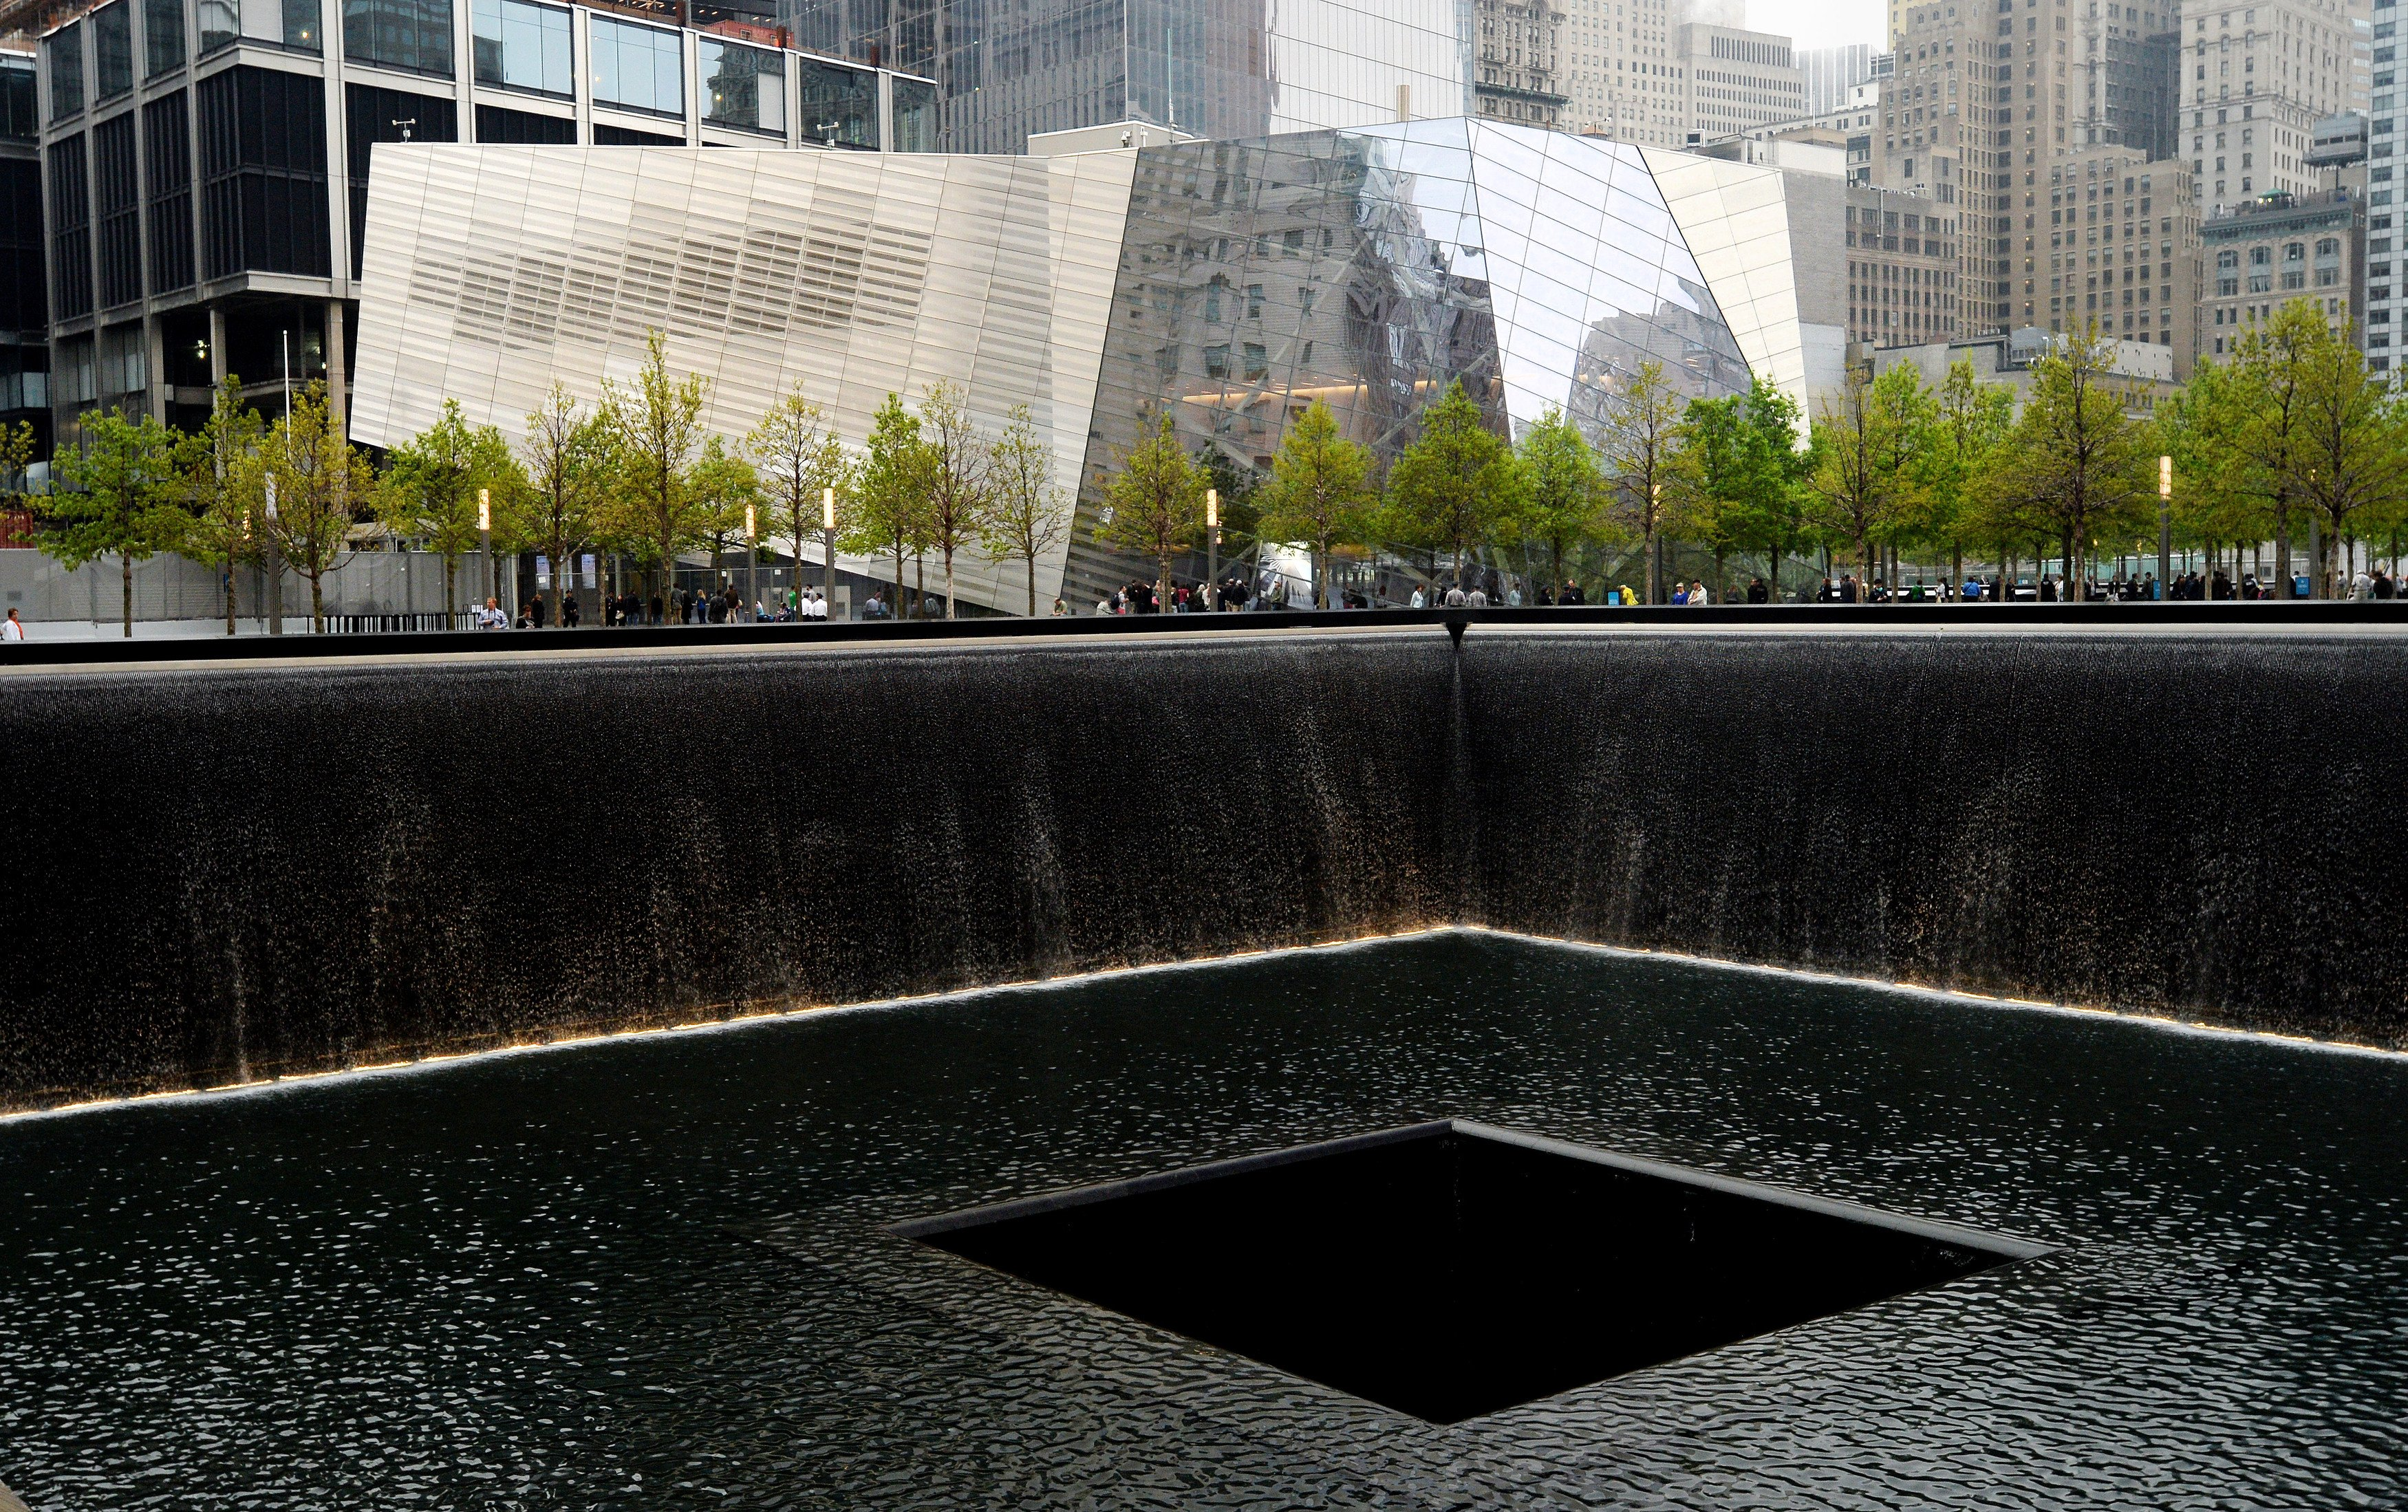 A view of the National September 11 Memorial Museum with the north reflecting pool in foreground during the museum's dedication ceremony on May 15, 2014 in New York City.